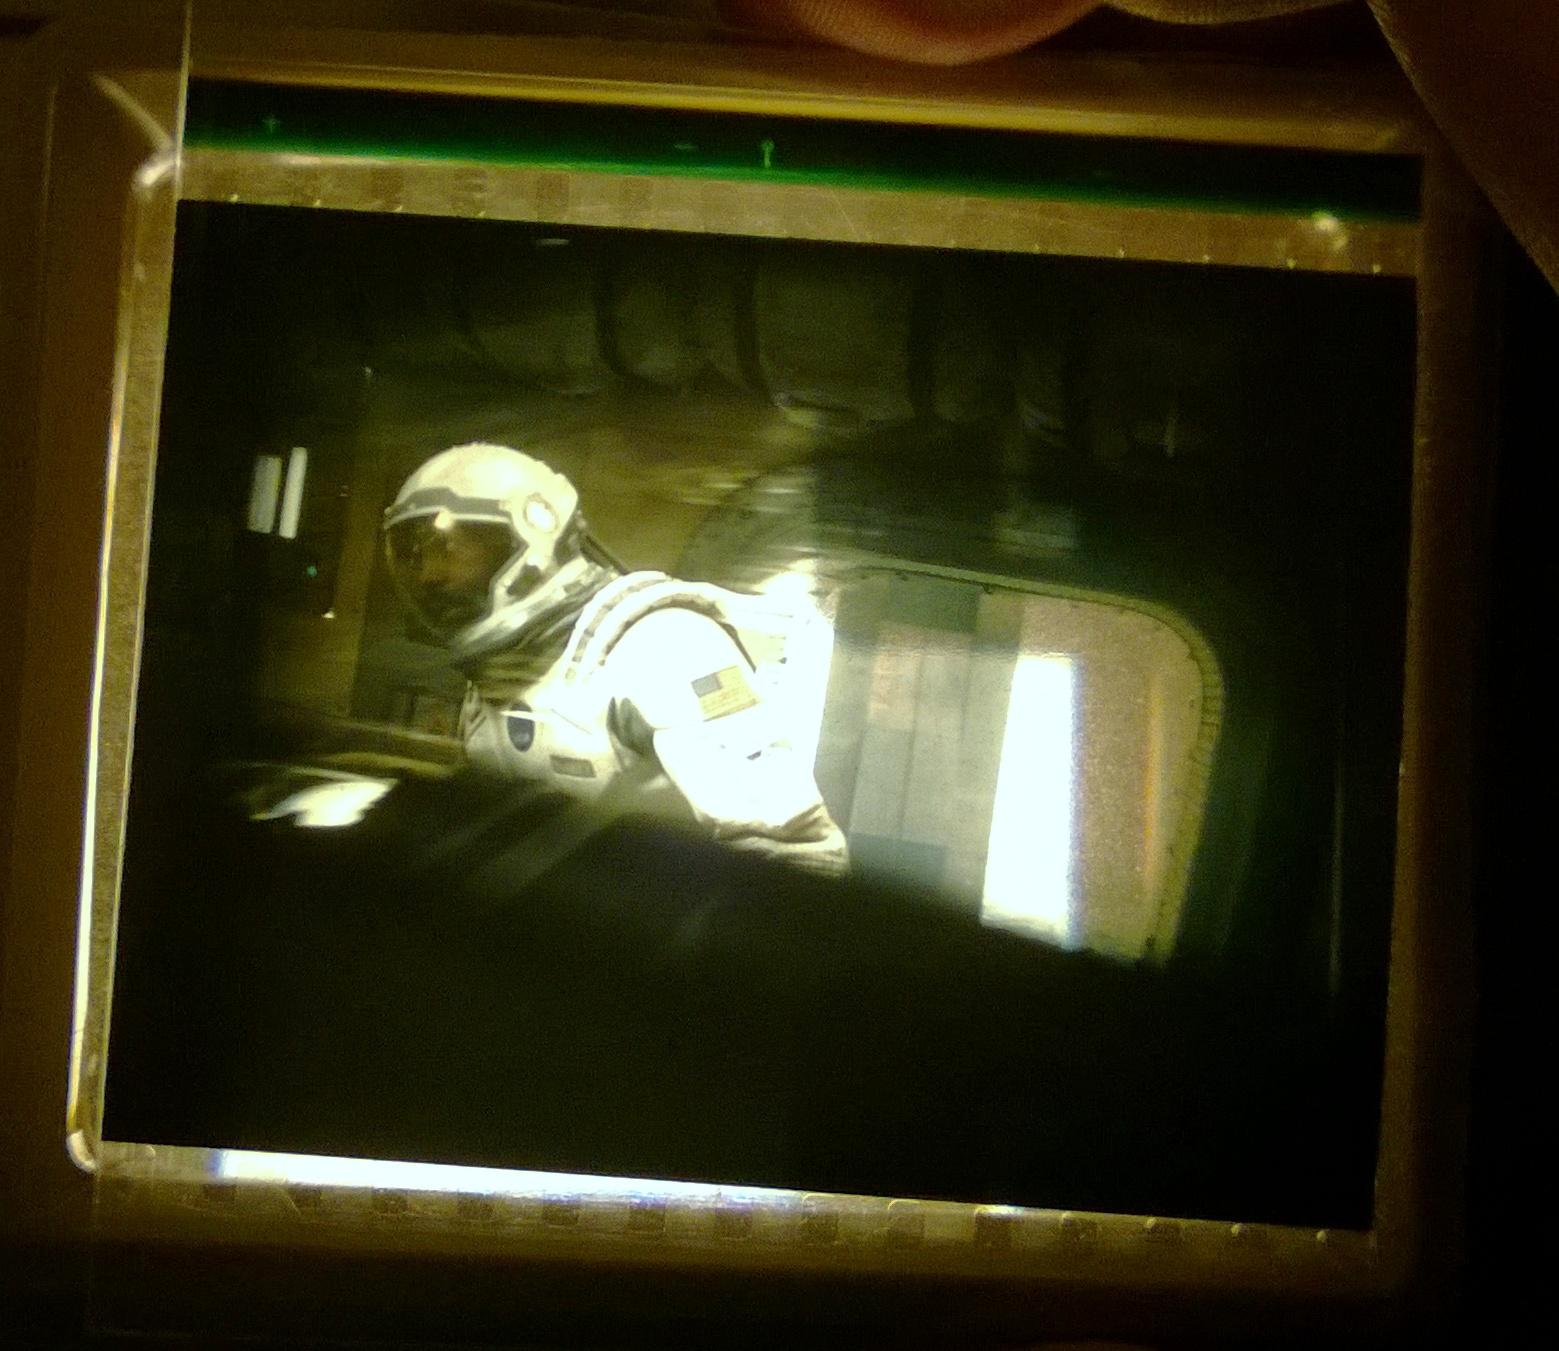 My piece of IMAX film from Interstellar